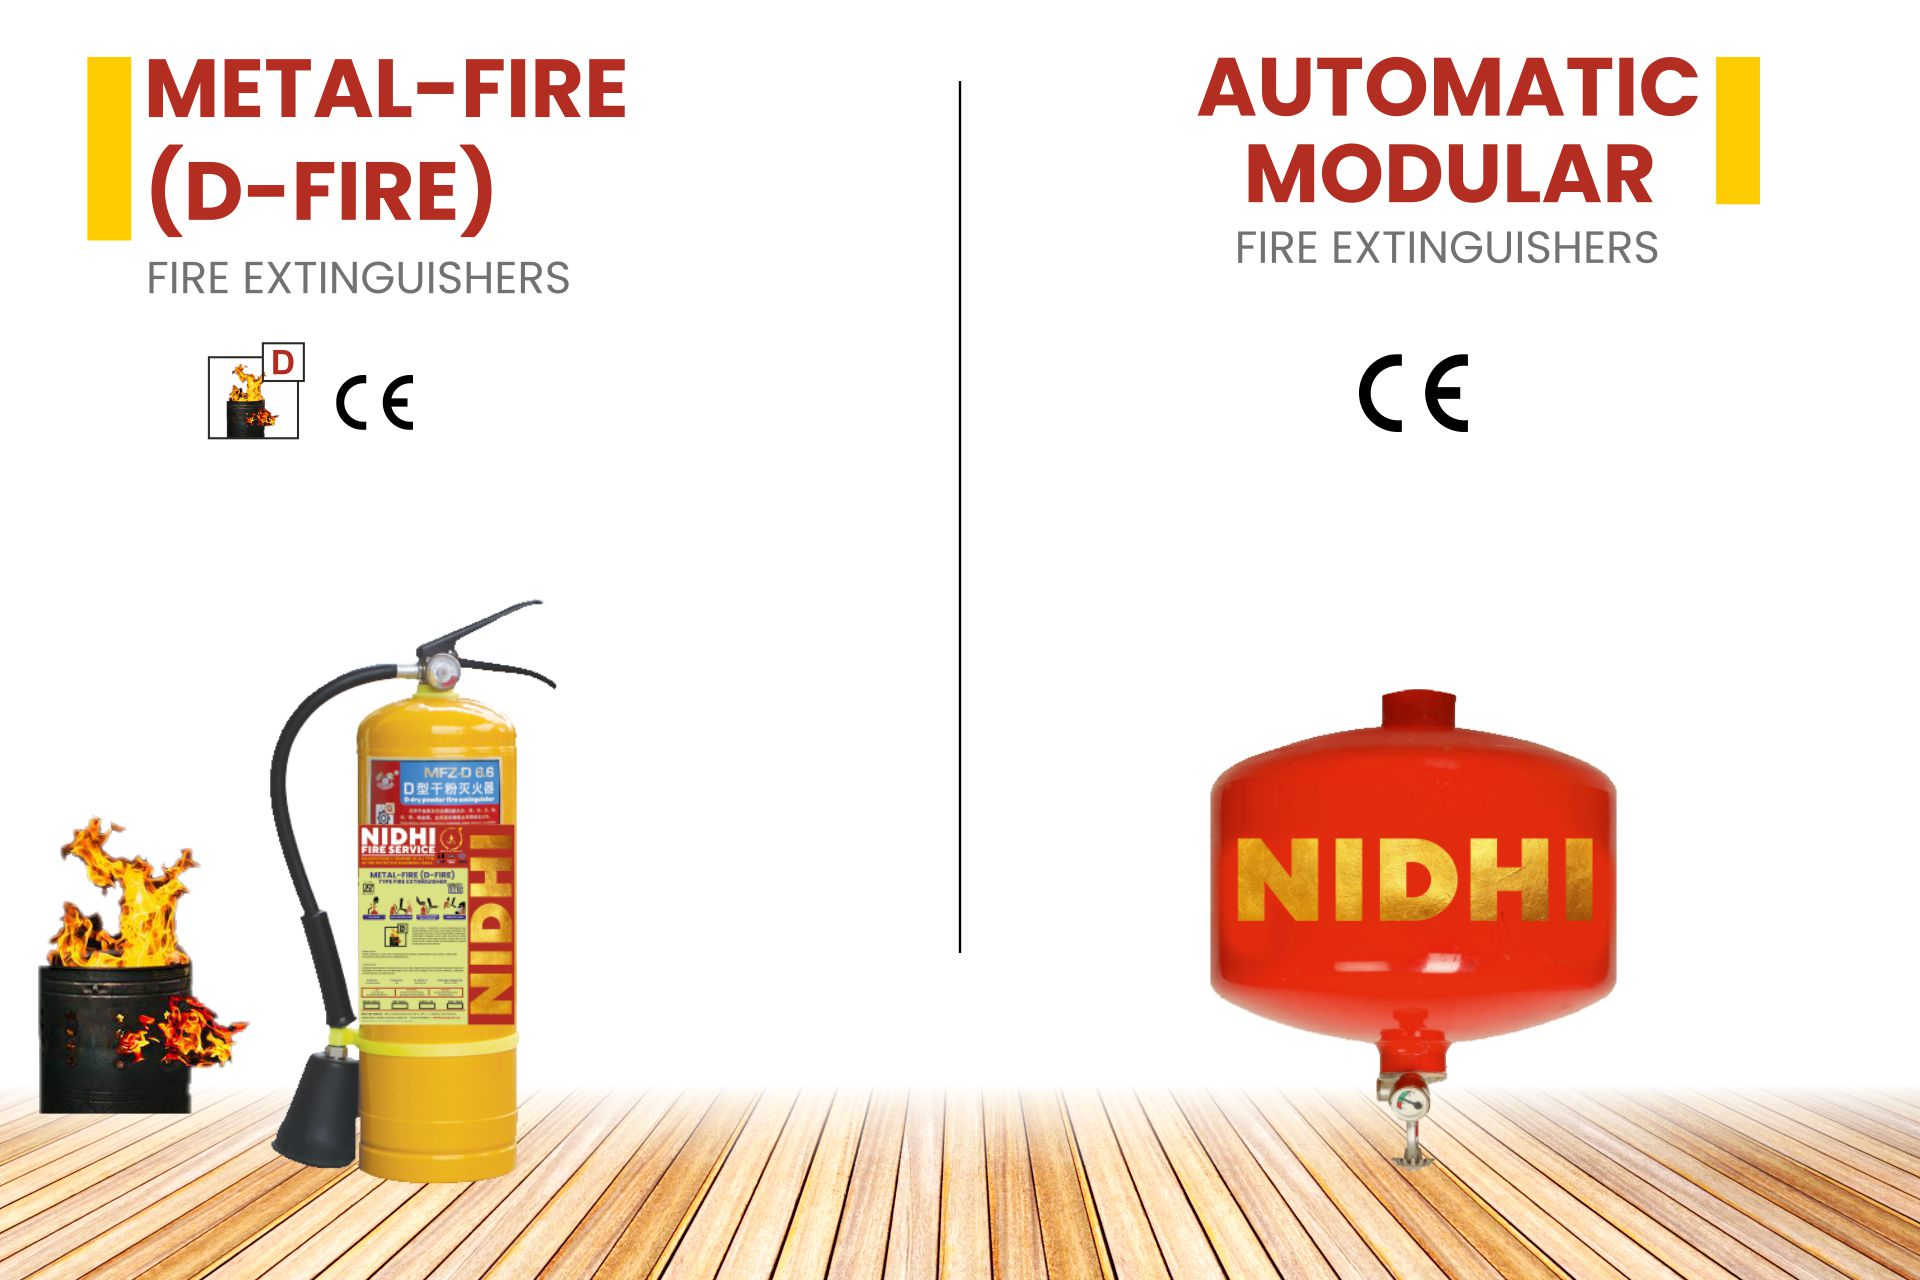 FIRE EXTINGUISHERS Product 6